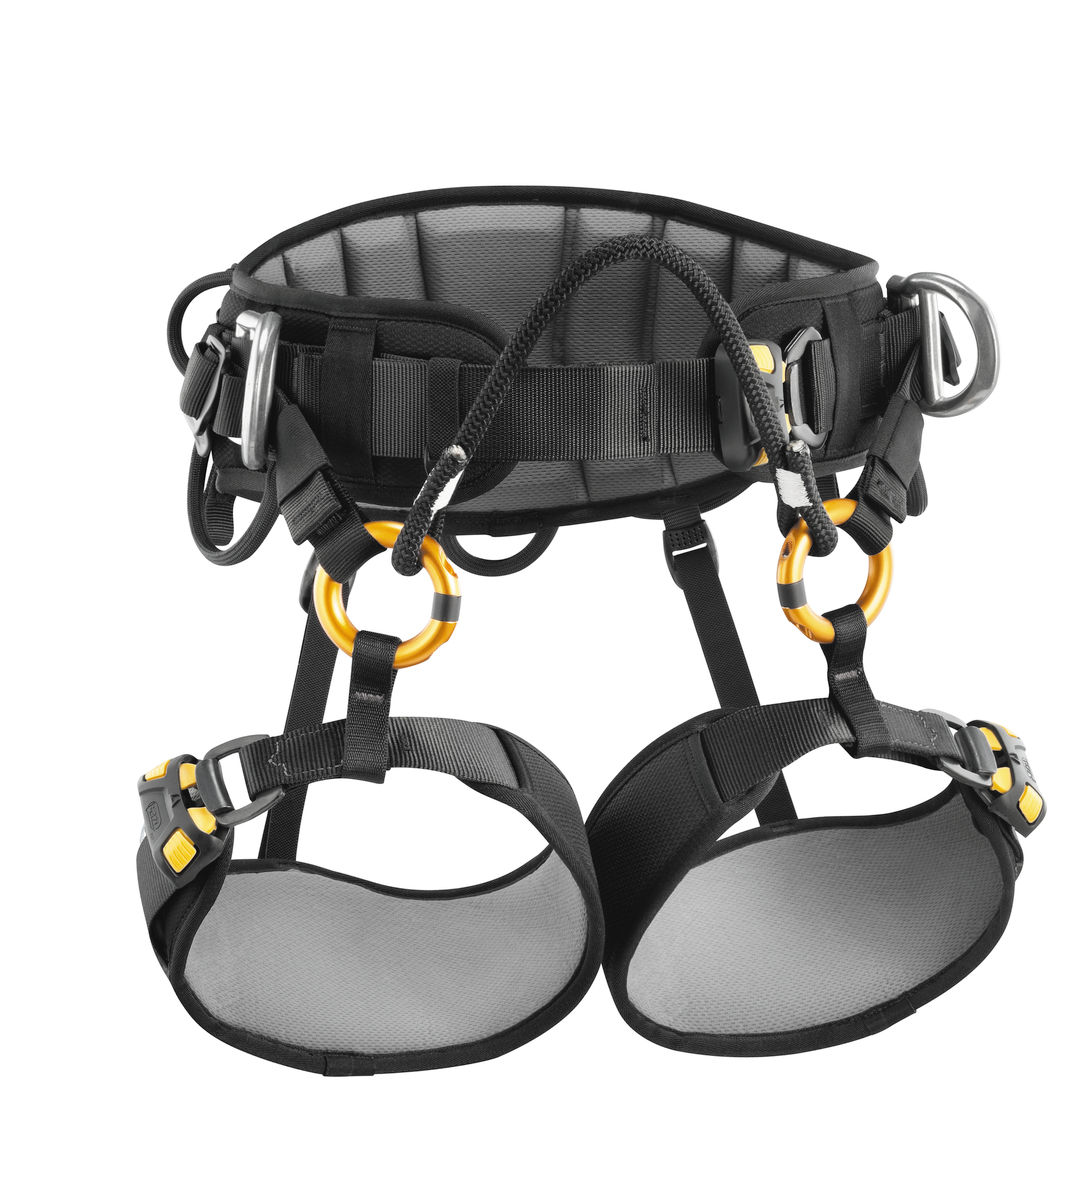 Petzl SEQUOIA climbing harness